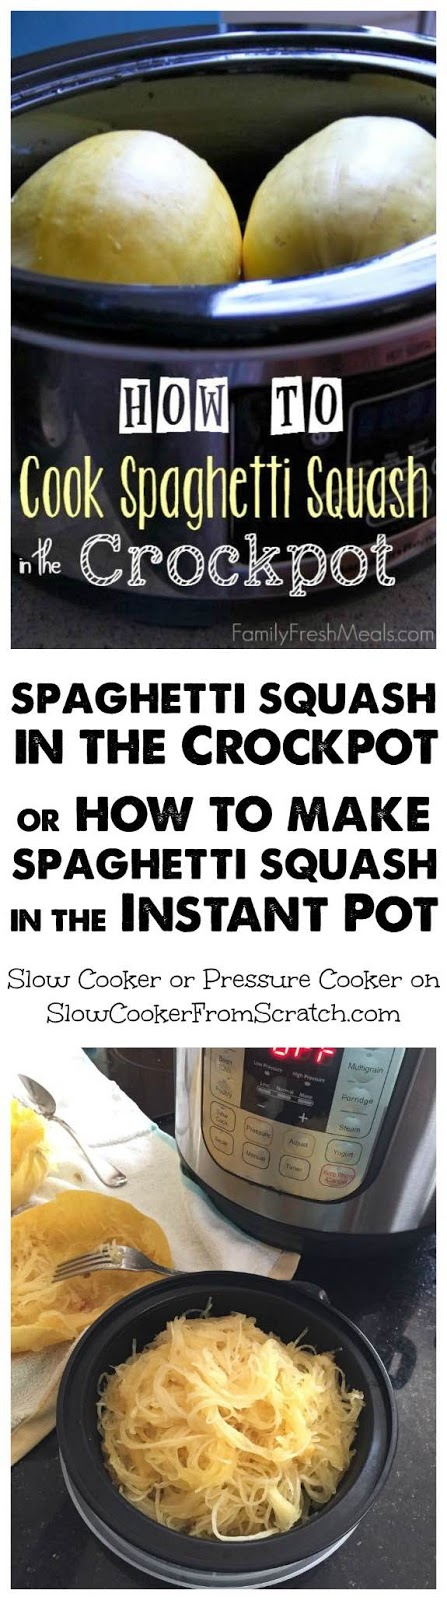 How to Cook Spaghetti Squash in the CrockPot or How to Make Instant Pot Spaghetti Squash found on SlowCookerFromScratch.com